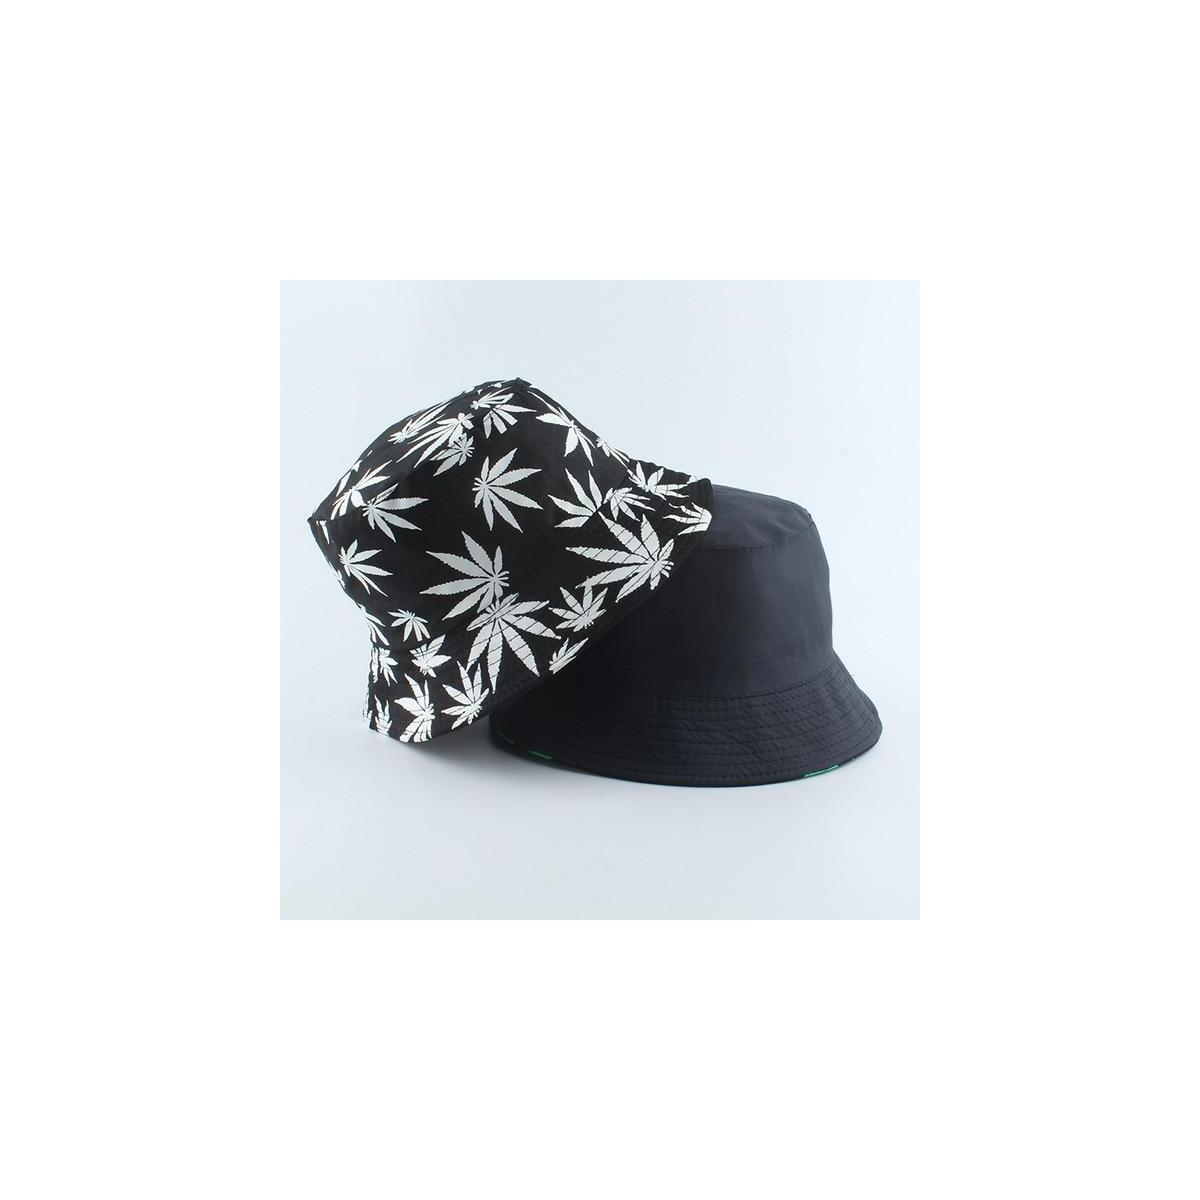 Cool Print Bucket Hats, black with white